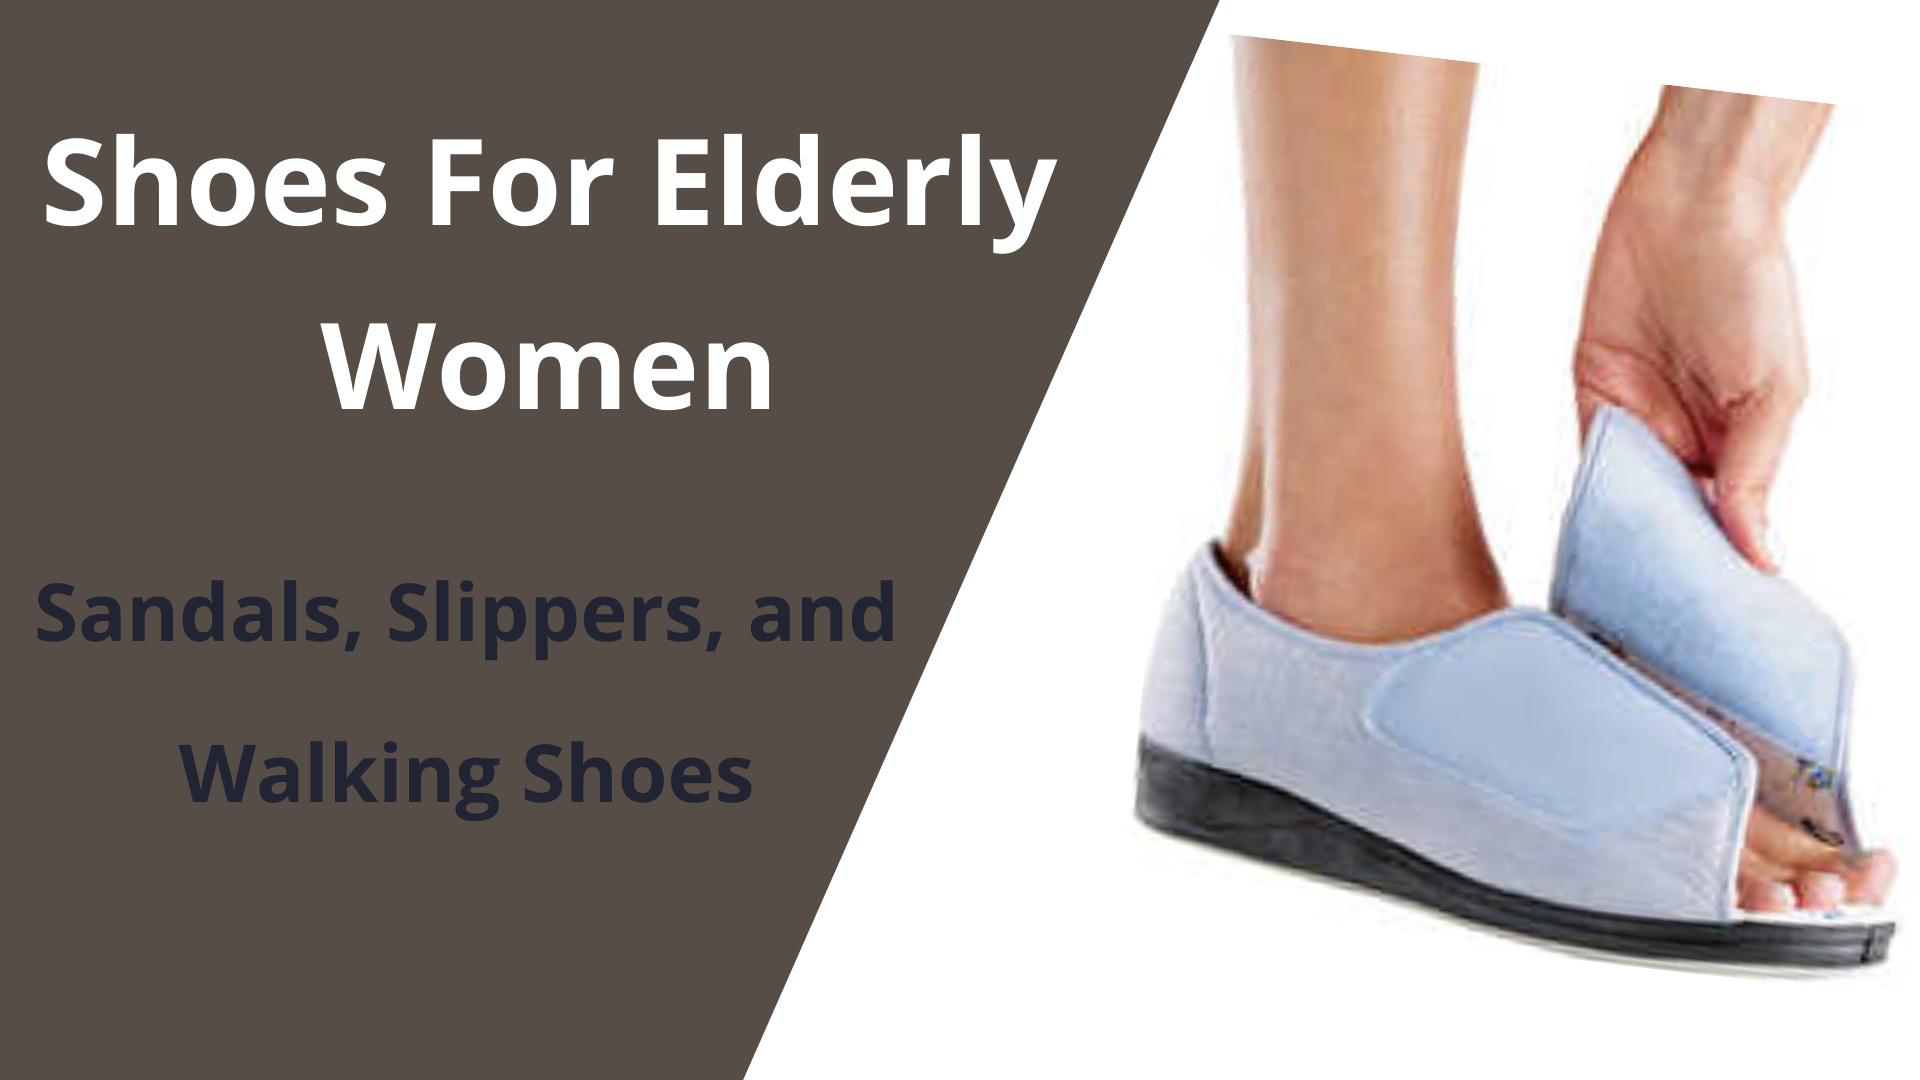 Best Shoes for Elderly Women in 2020